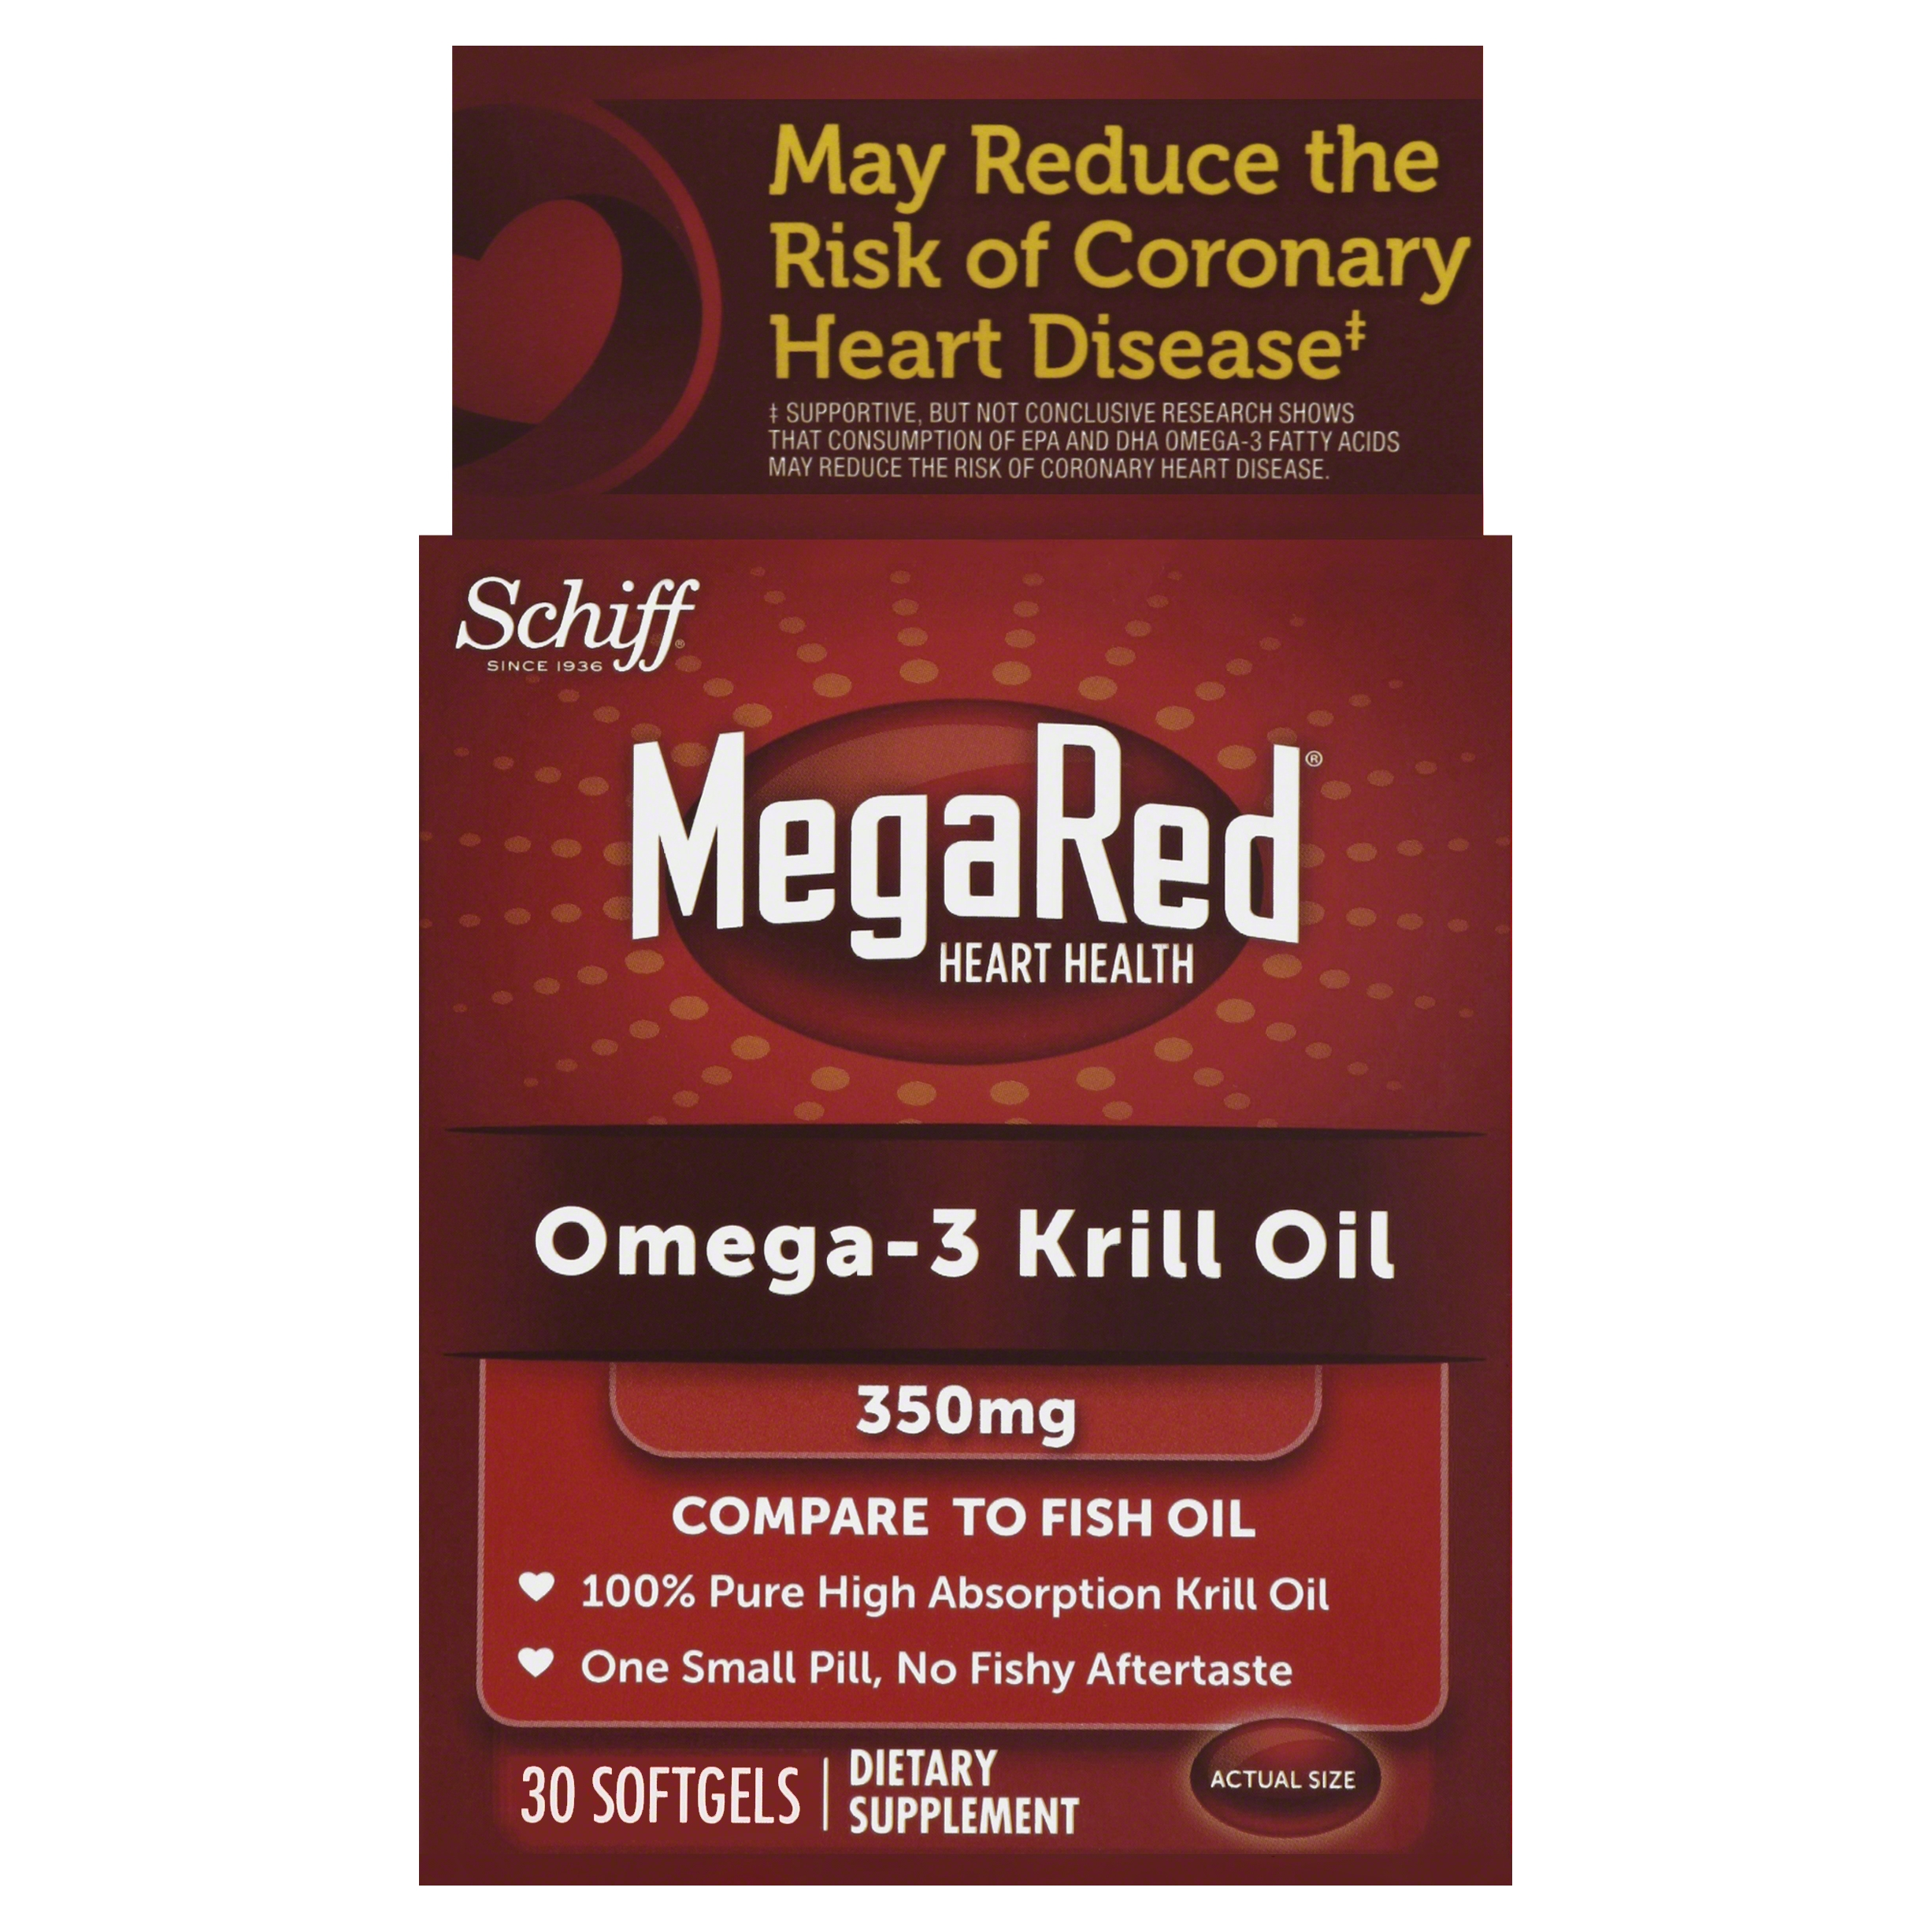 MegaRed Omega 3 Krill Oil 350mg Supplement, 30 Count